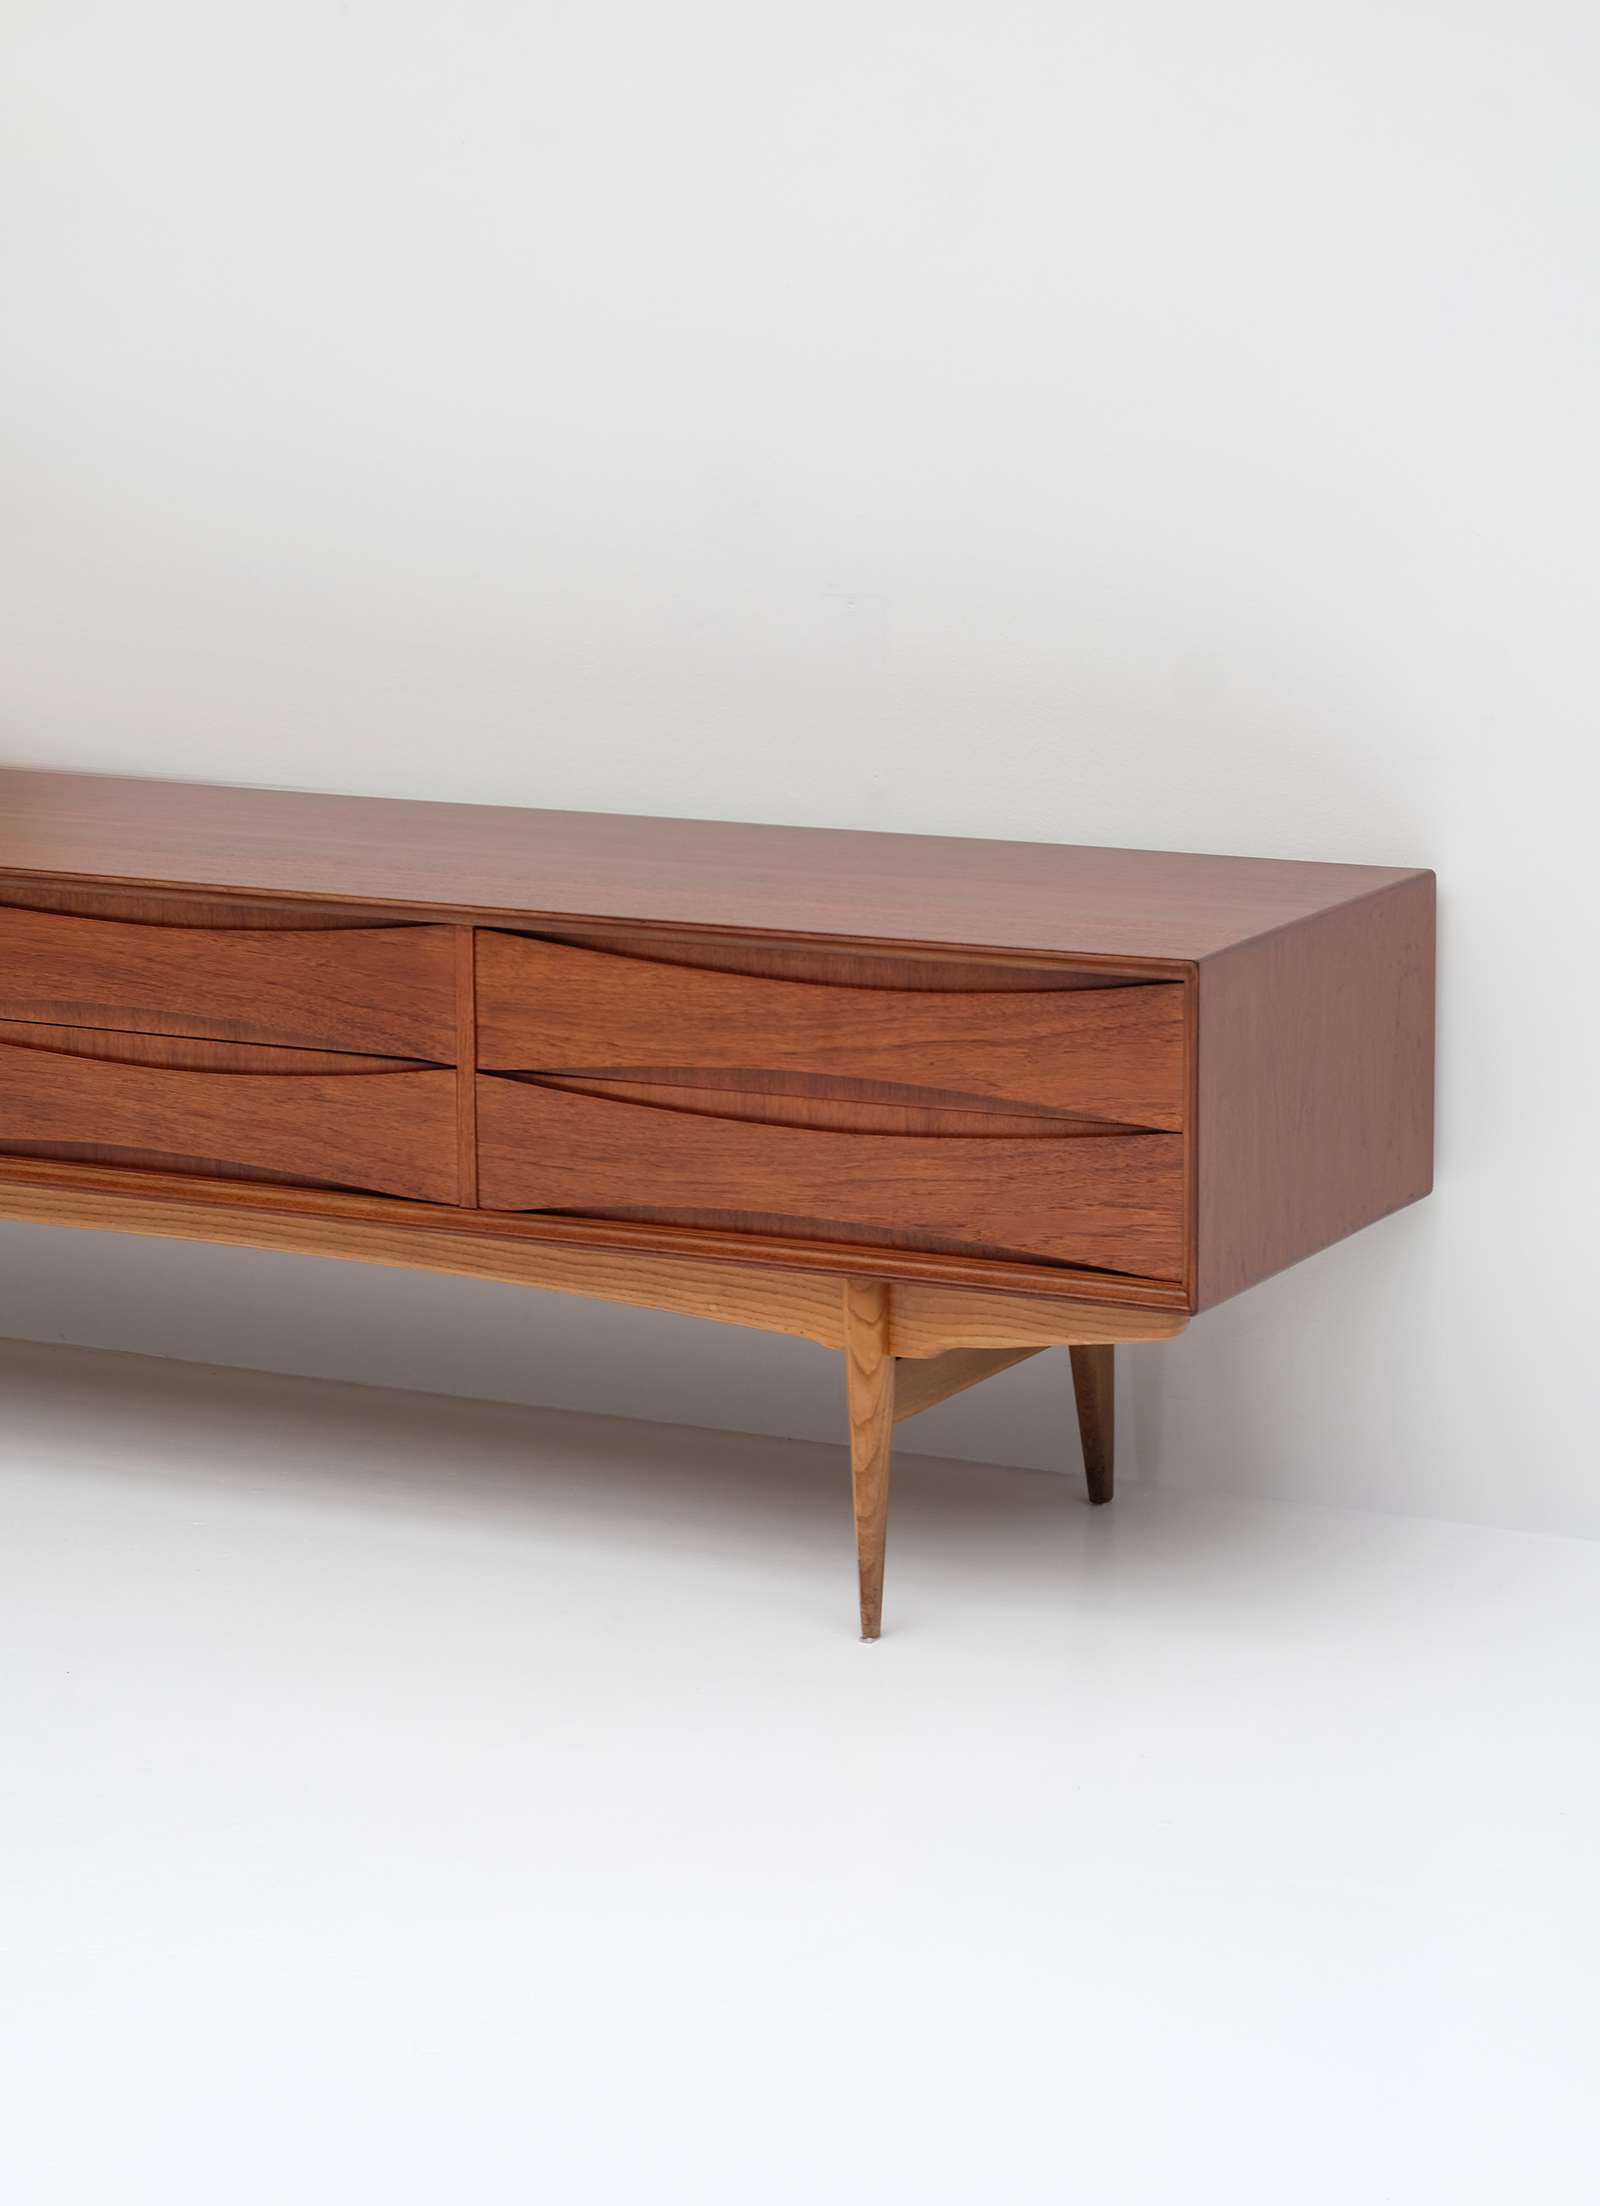 1958 V-form Paola Low Sideboard Oswald Vermaerckeimage 3